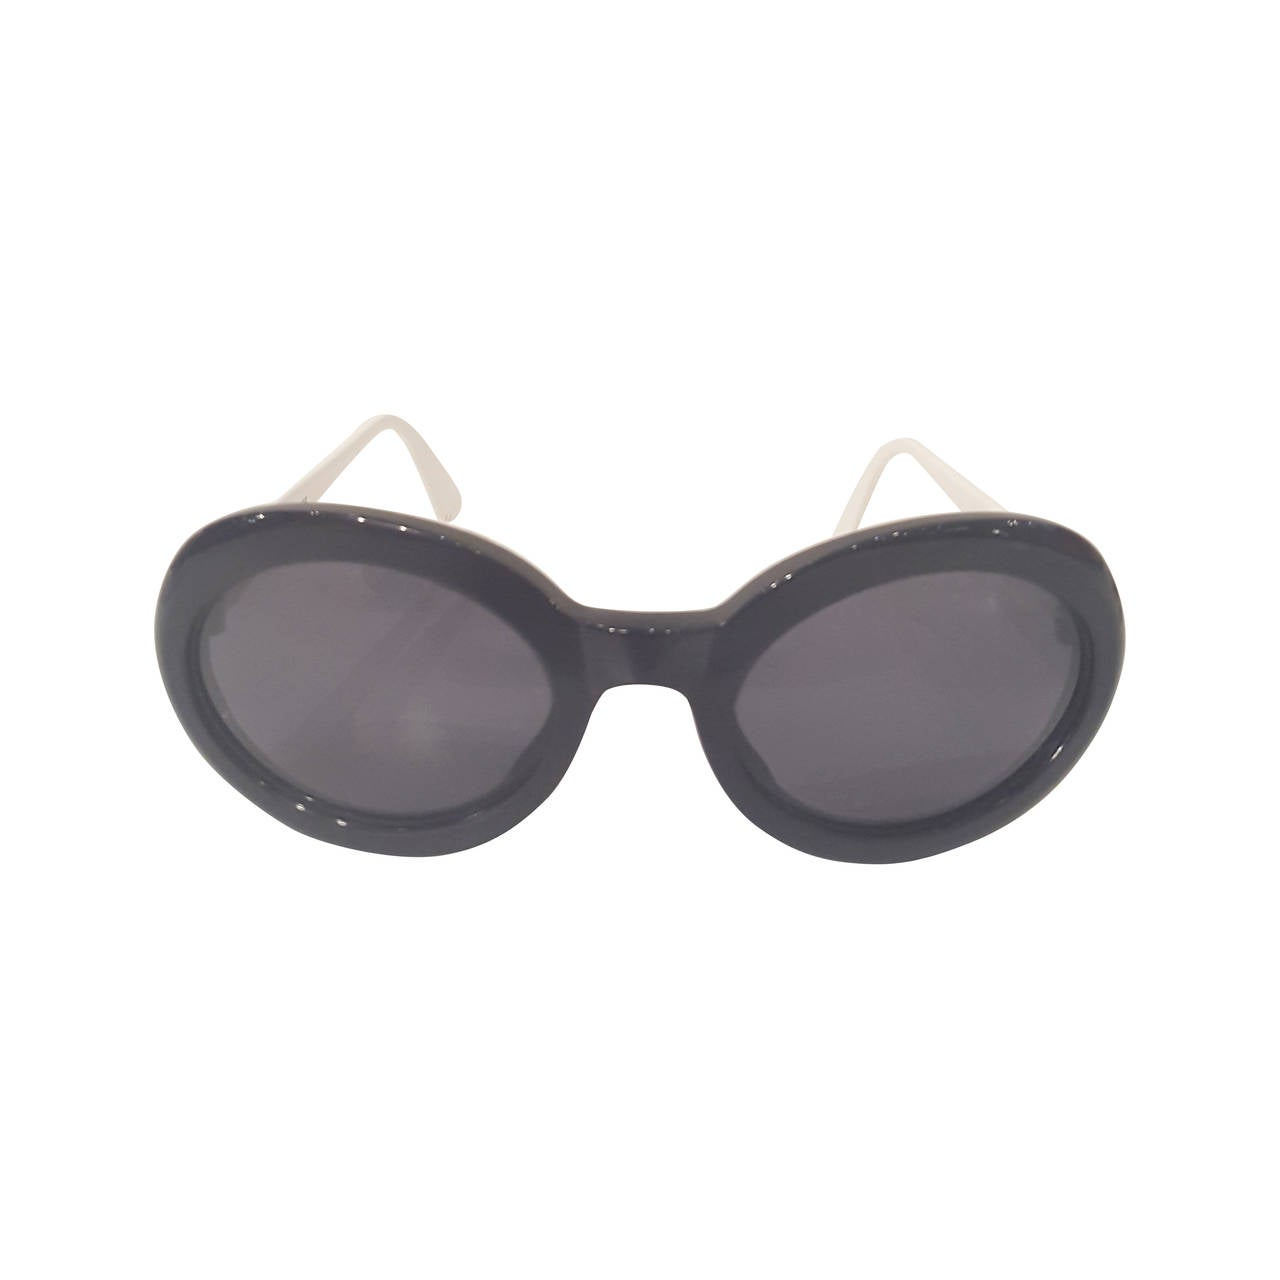 1980s Valentino Balck and dark blue navy sunglasses